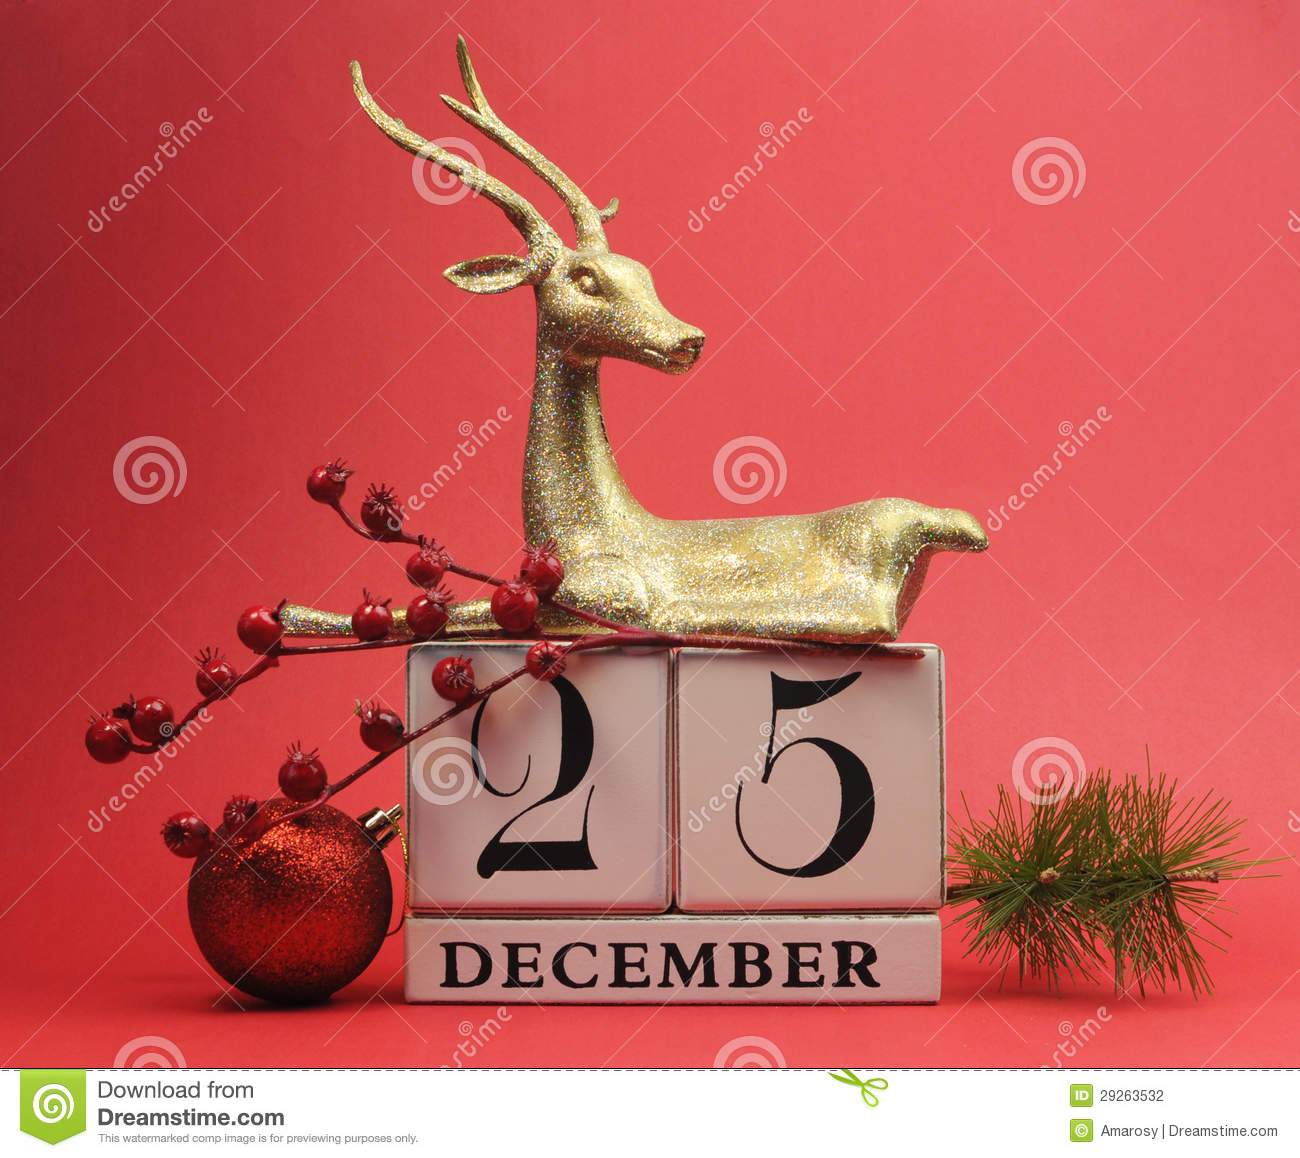 Red Theme Save The Date Calendar For Christmas Day, December 25 ...